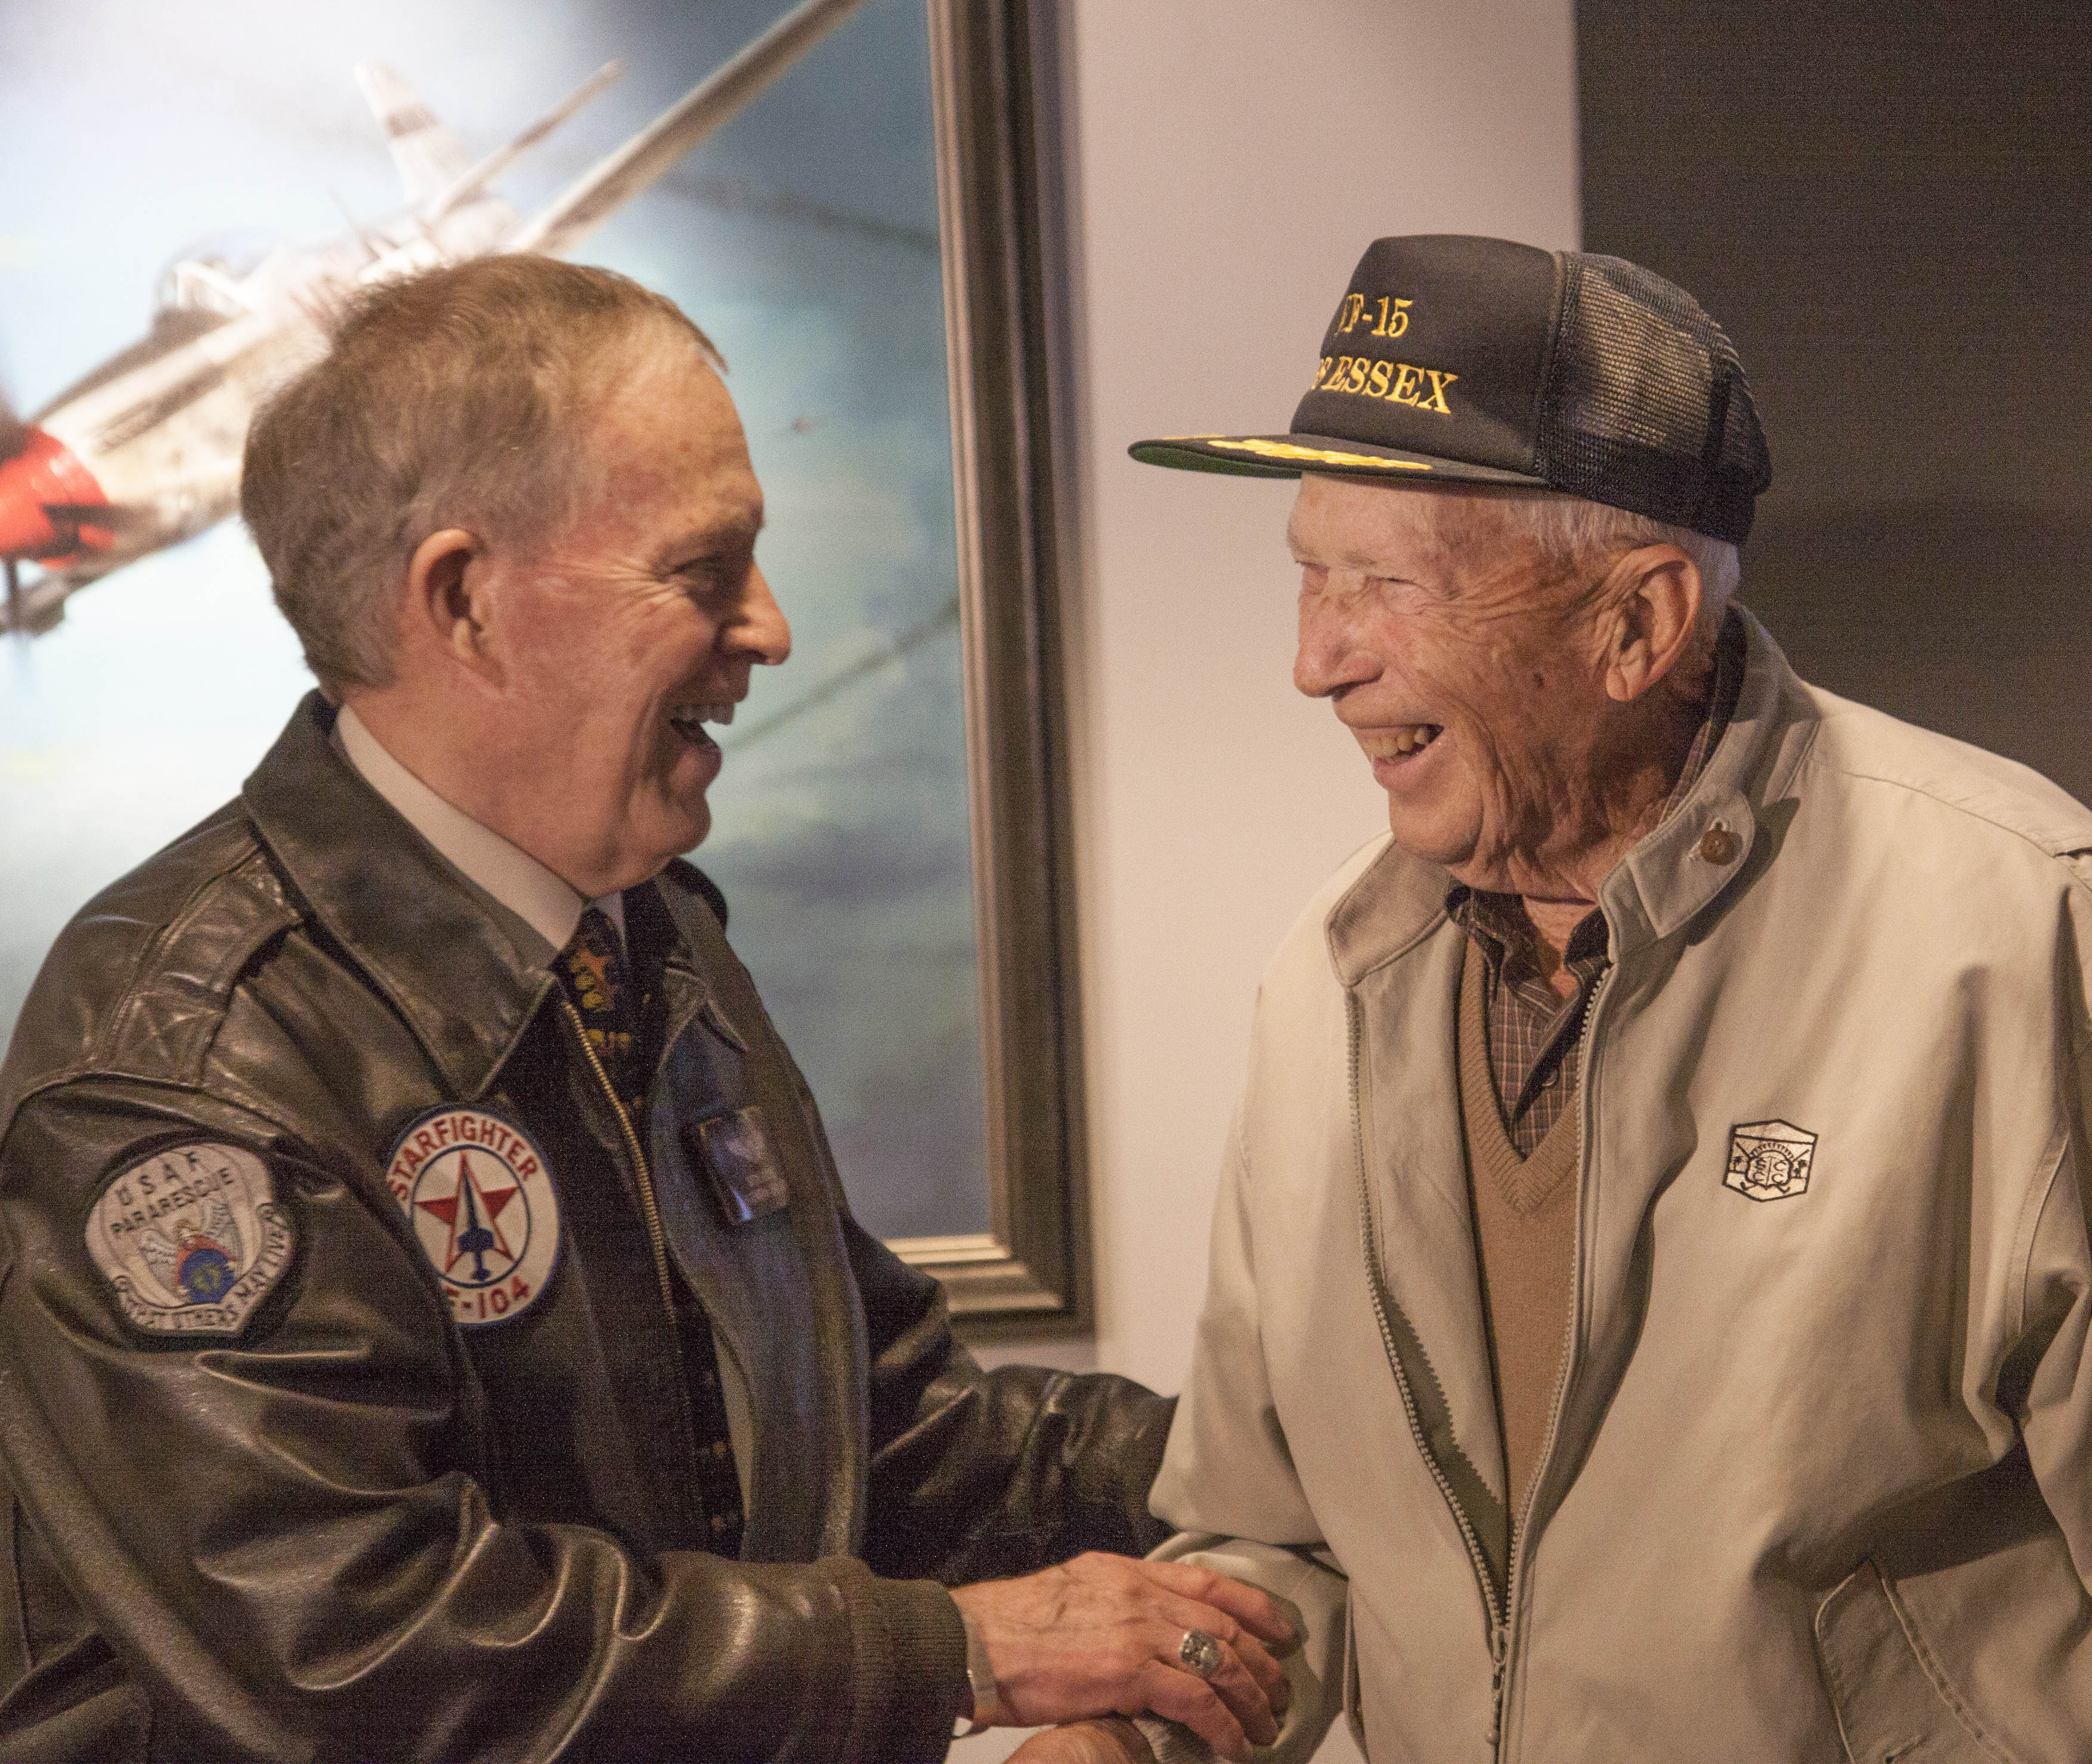 Fighter Aces awarded Congressional Gold Medal